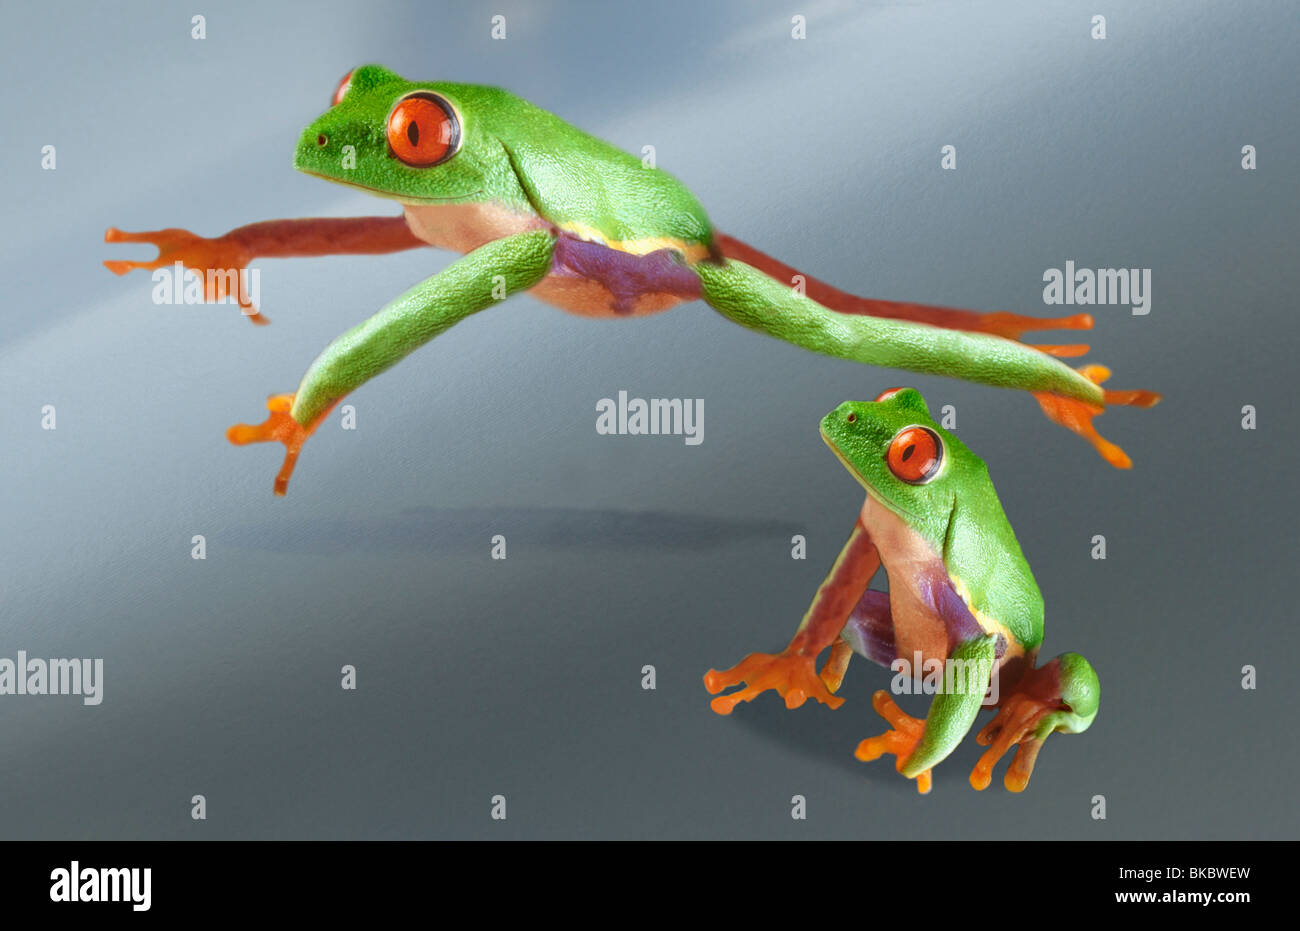 frogs playing leapfrog stock photo royalty free image 29150321